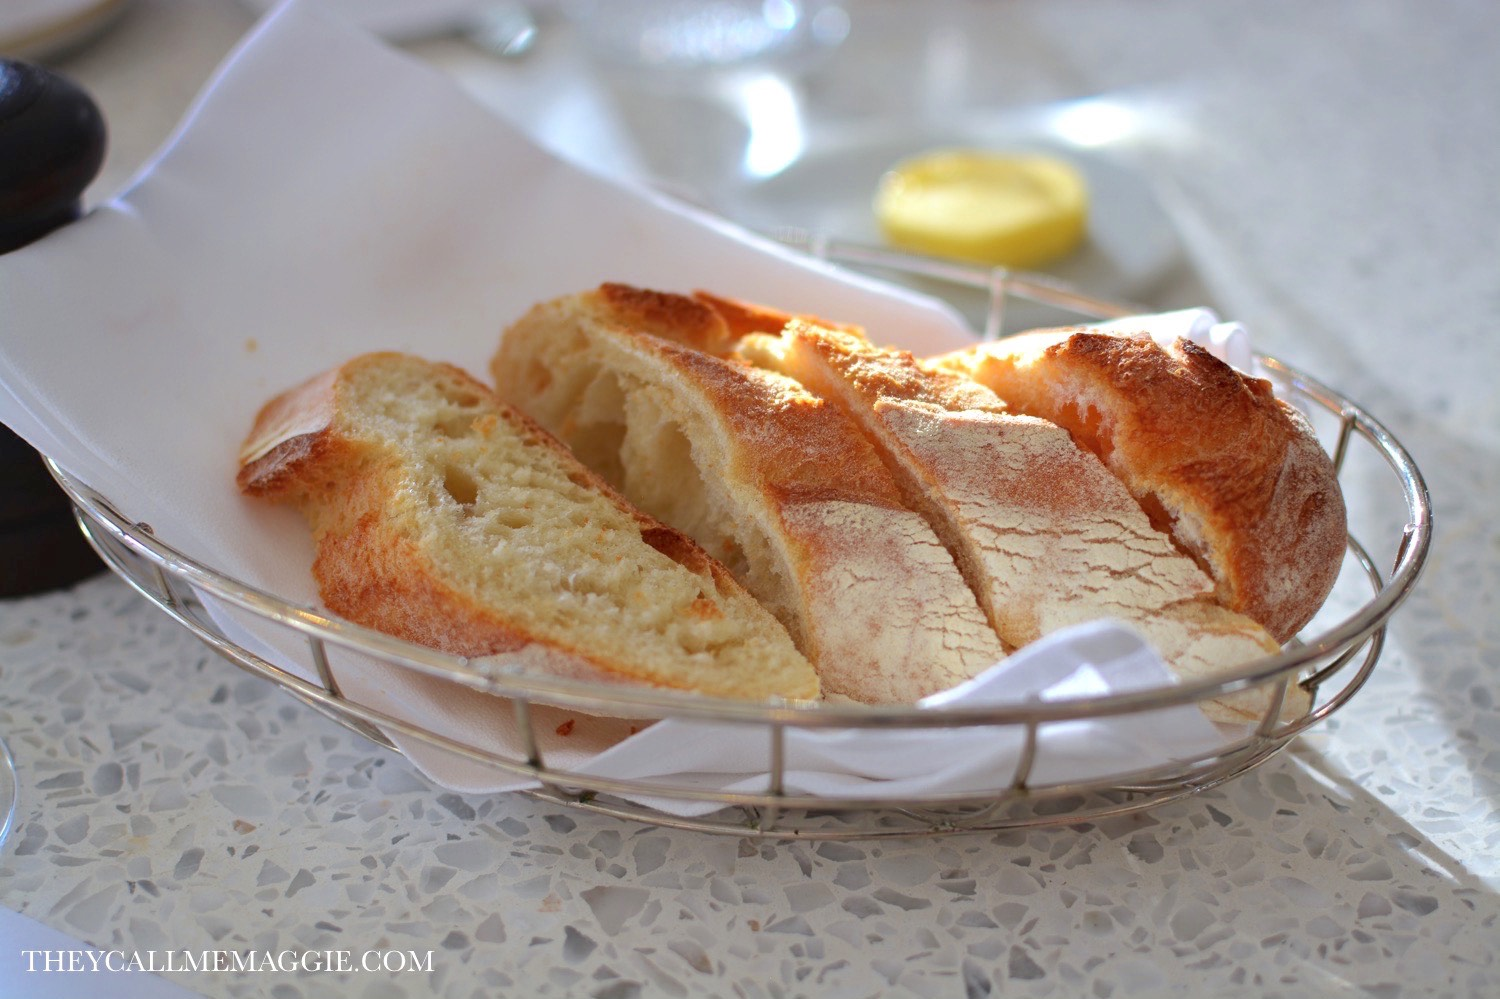 Complimentary bread and butter.